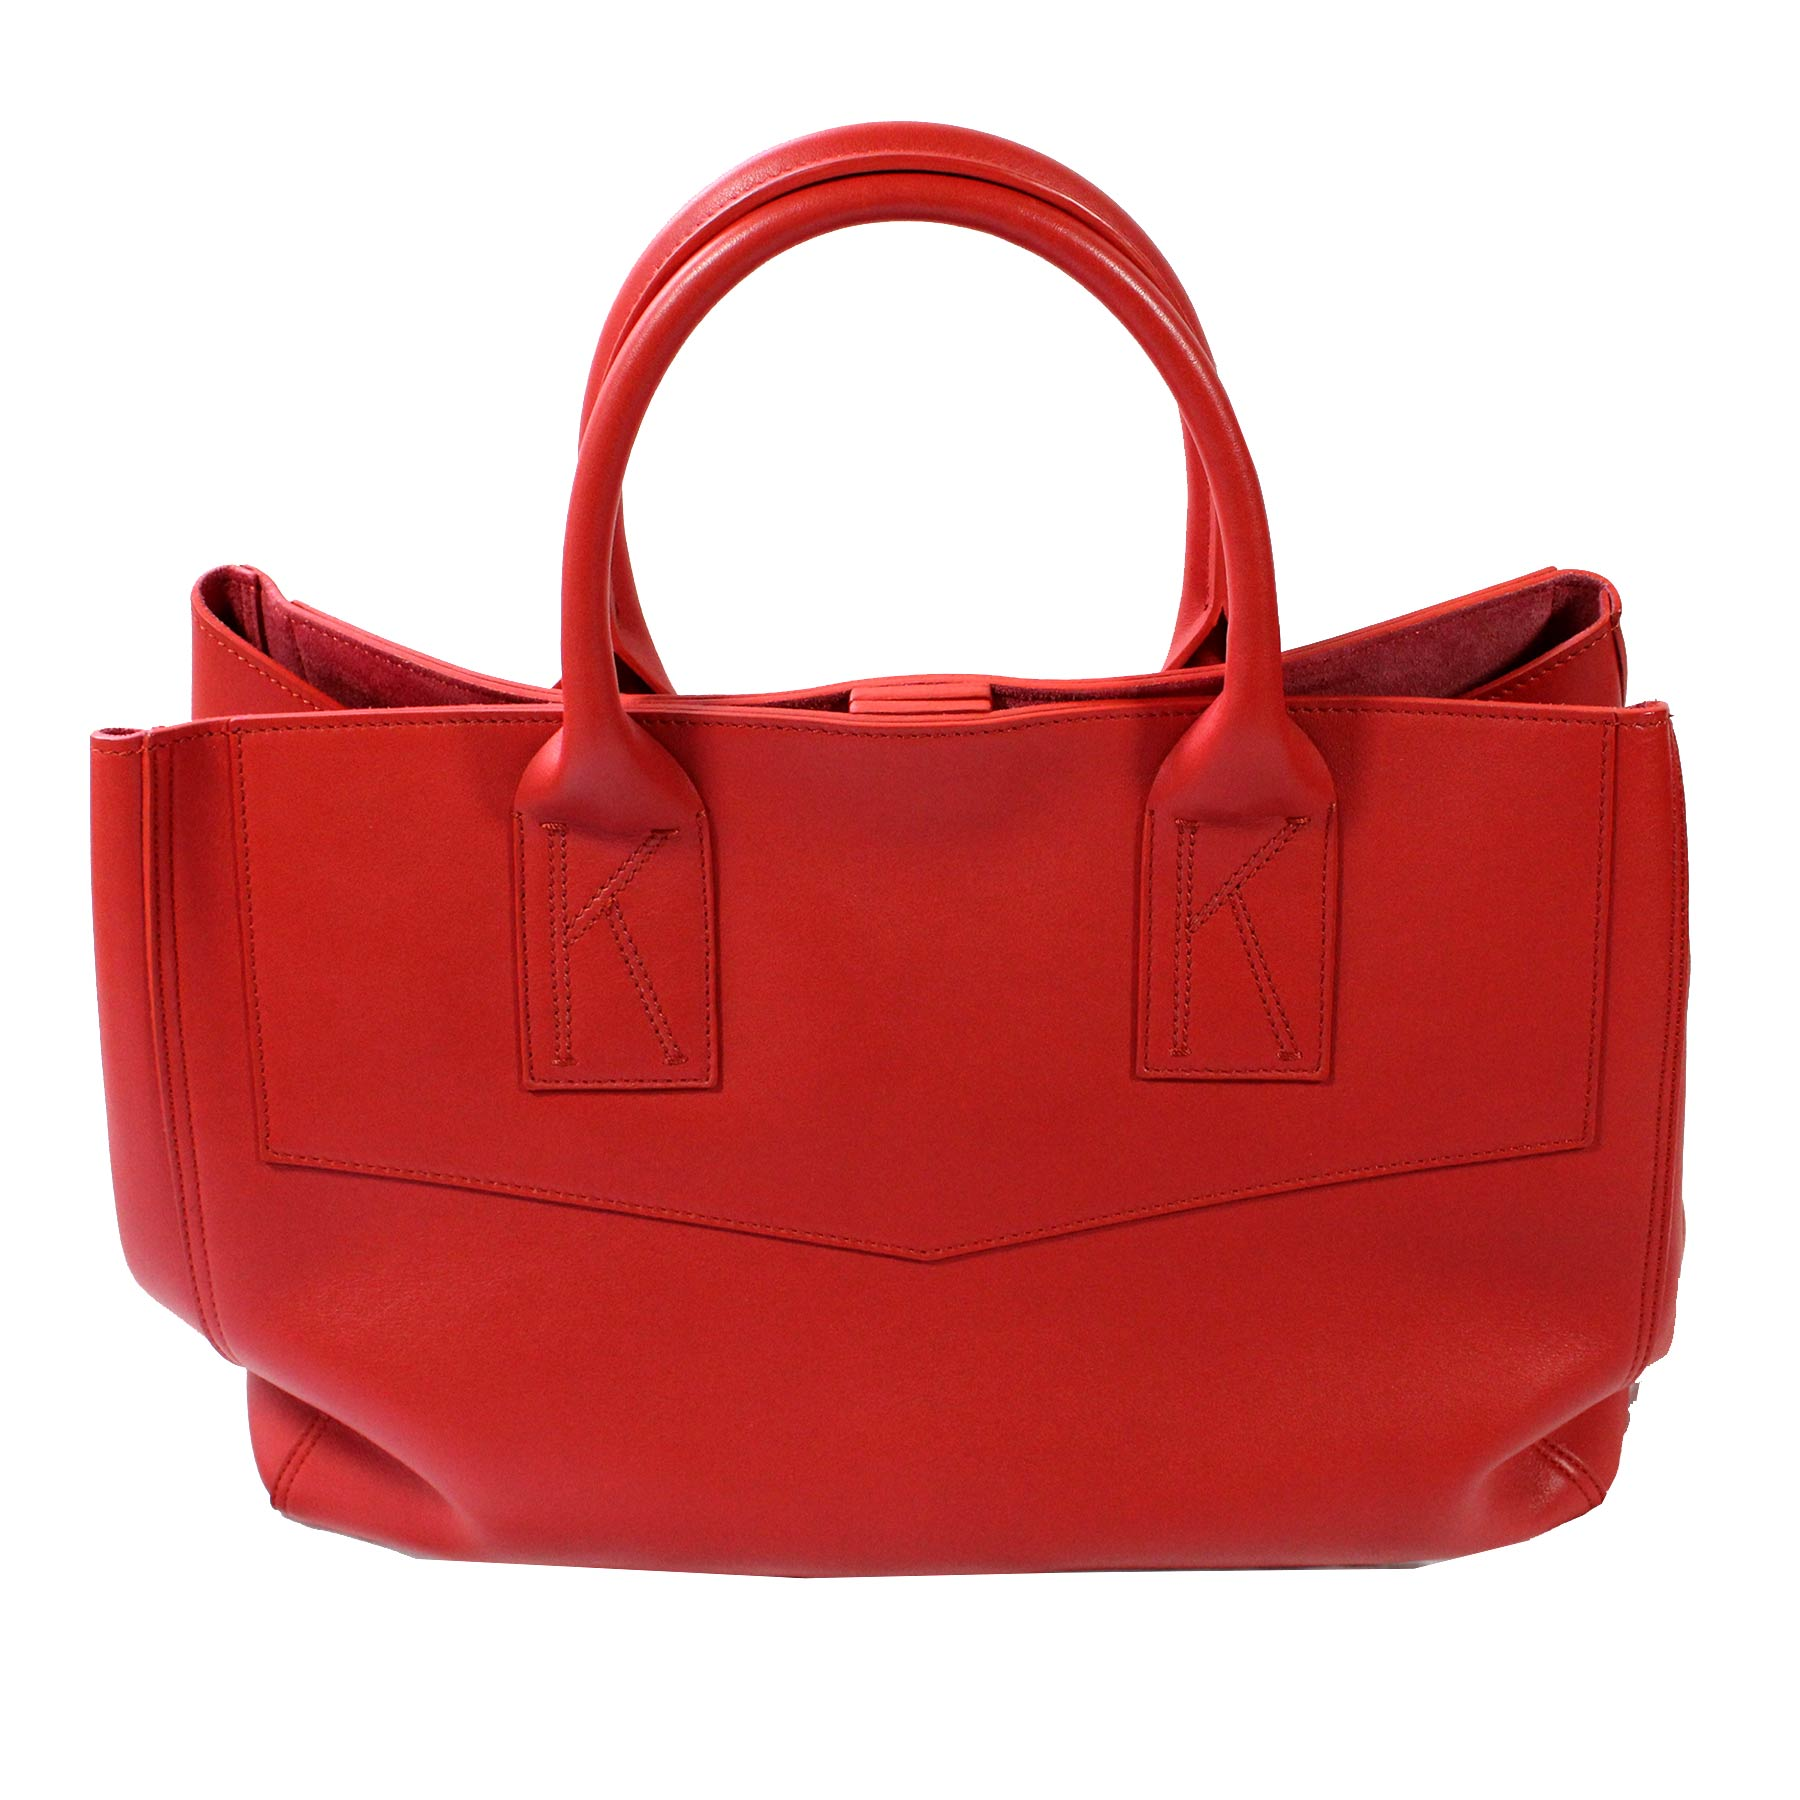 Kiton Handbag Red Leather Tote With Purse